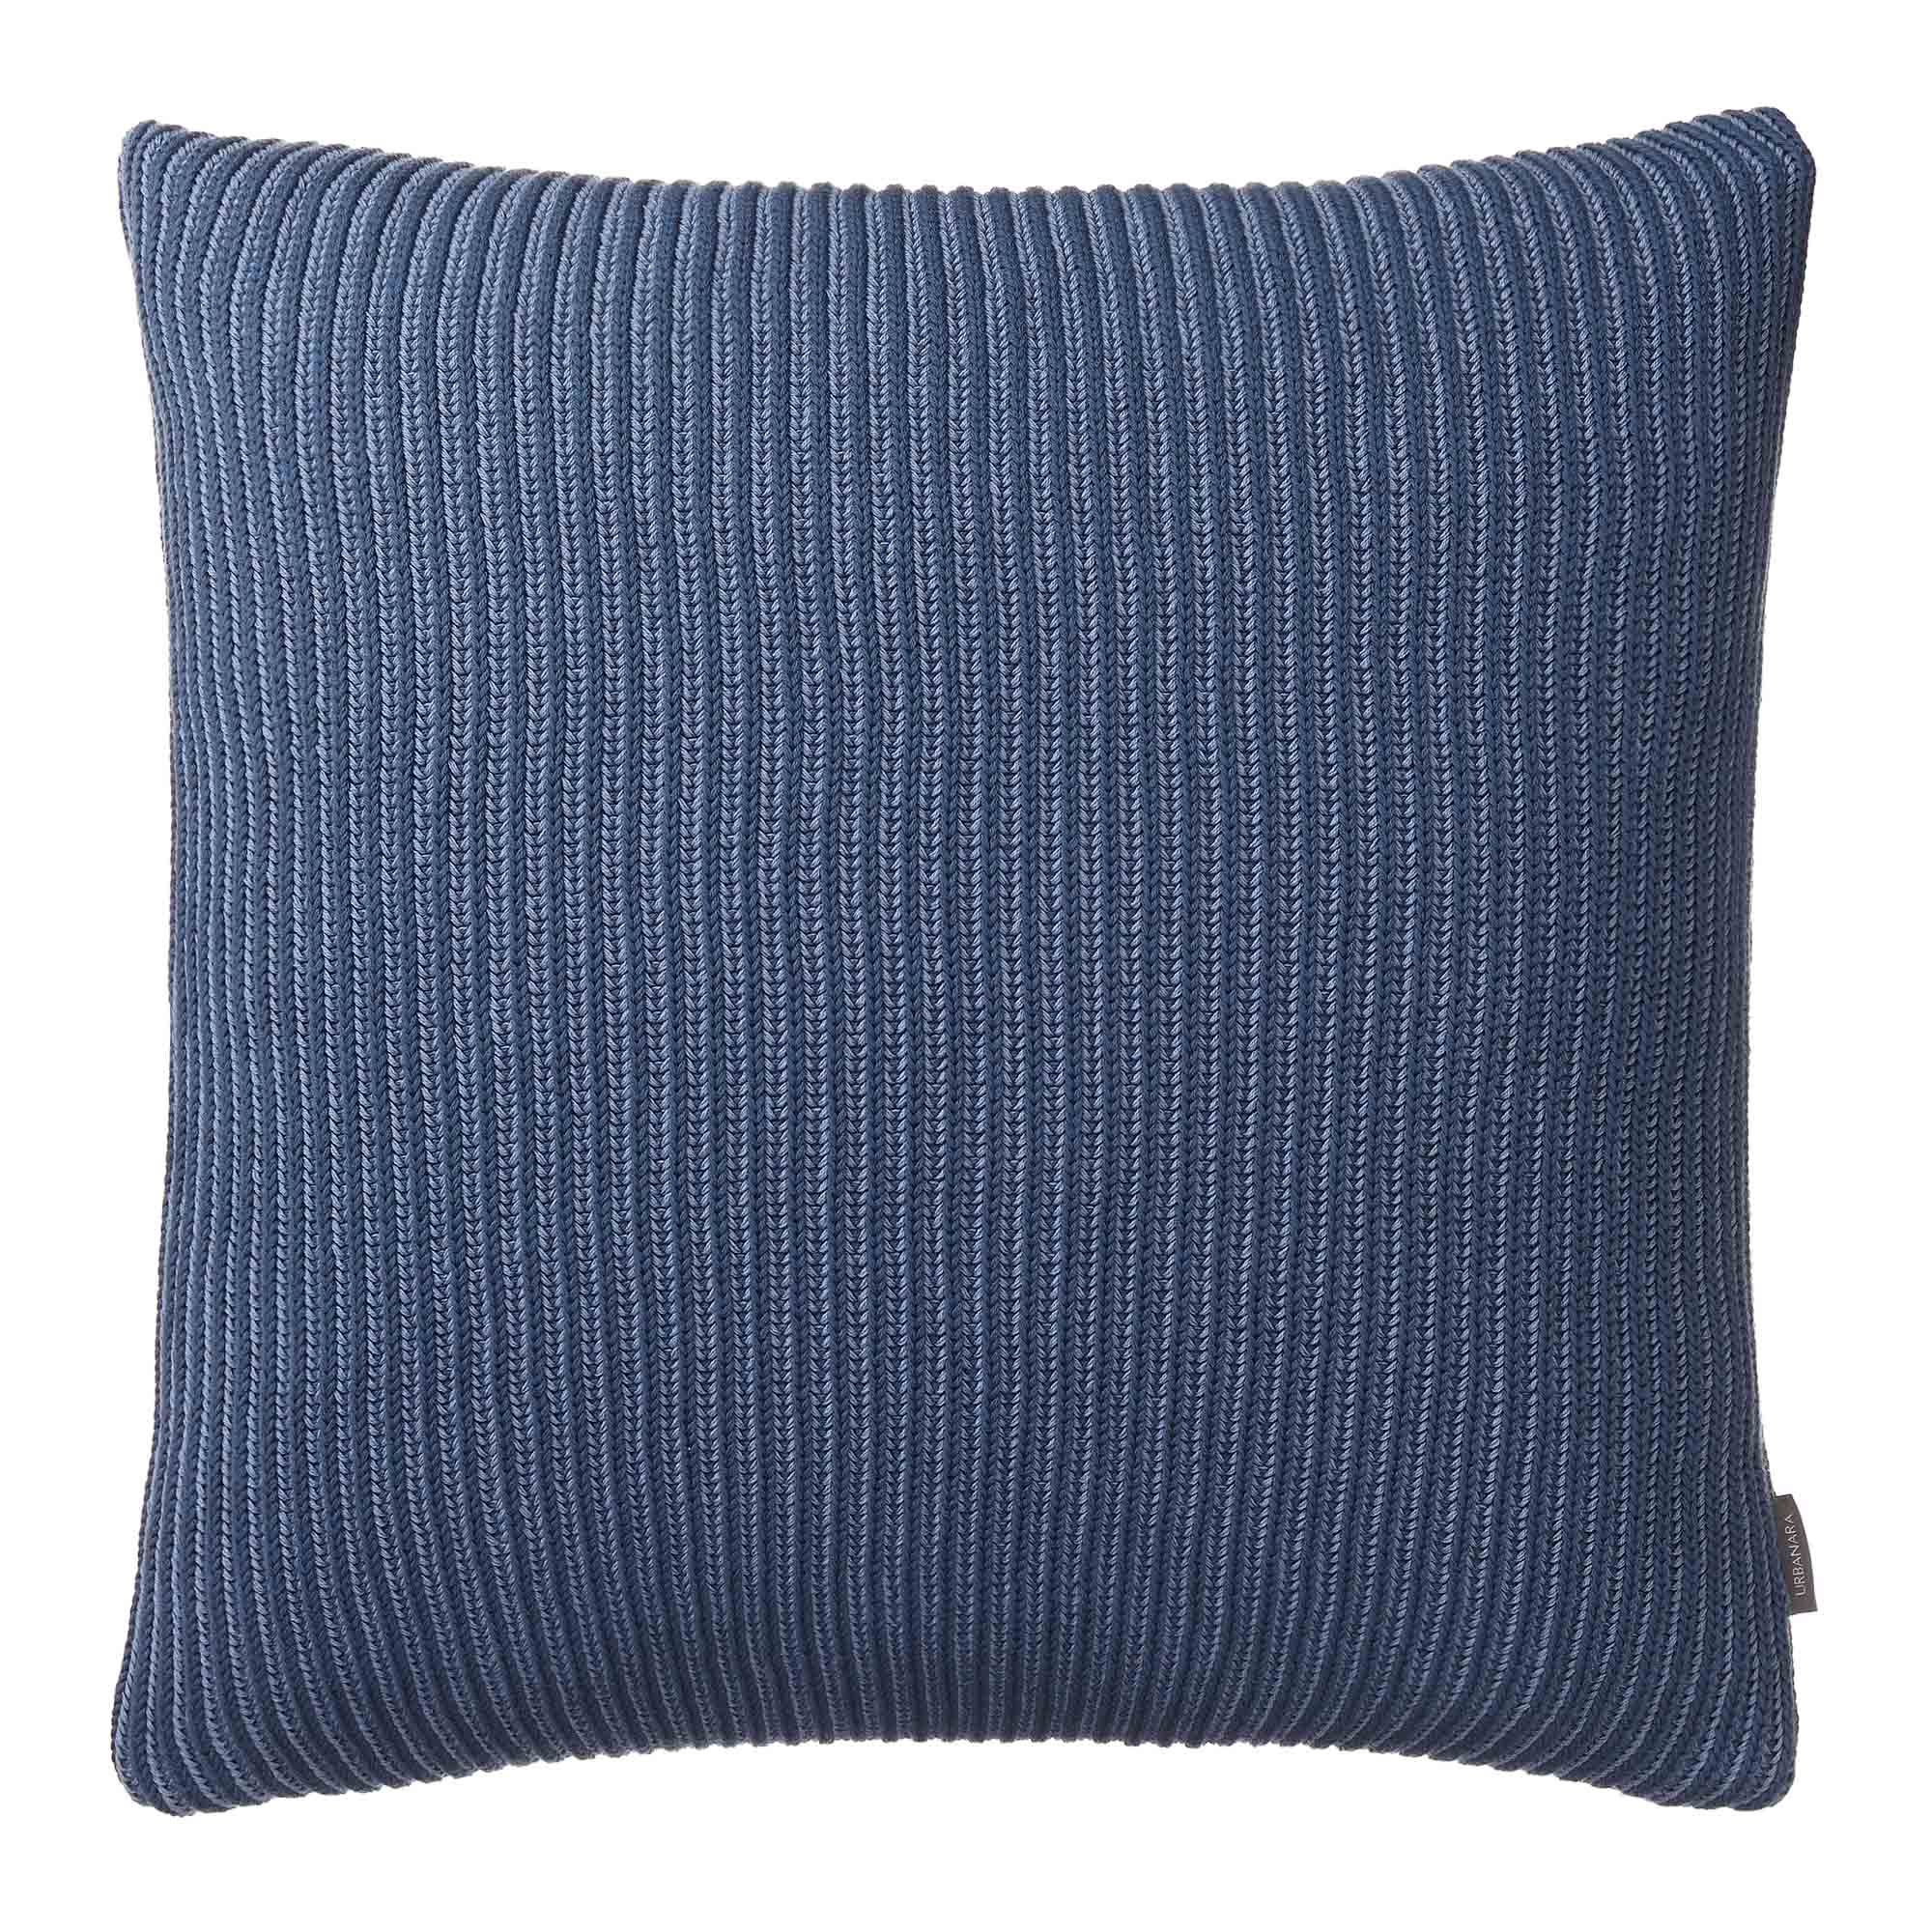 Azoia cushion cover, grey blue & light grey blue, 100% organic cotton